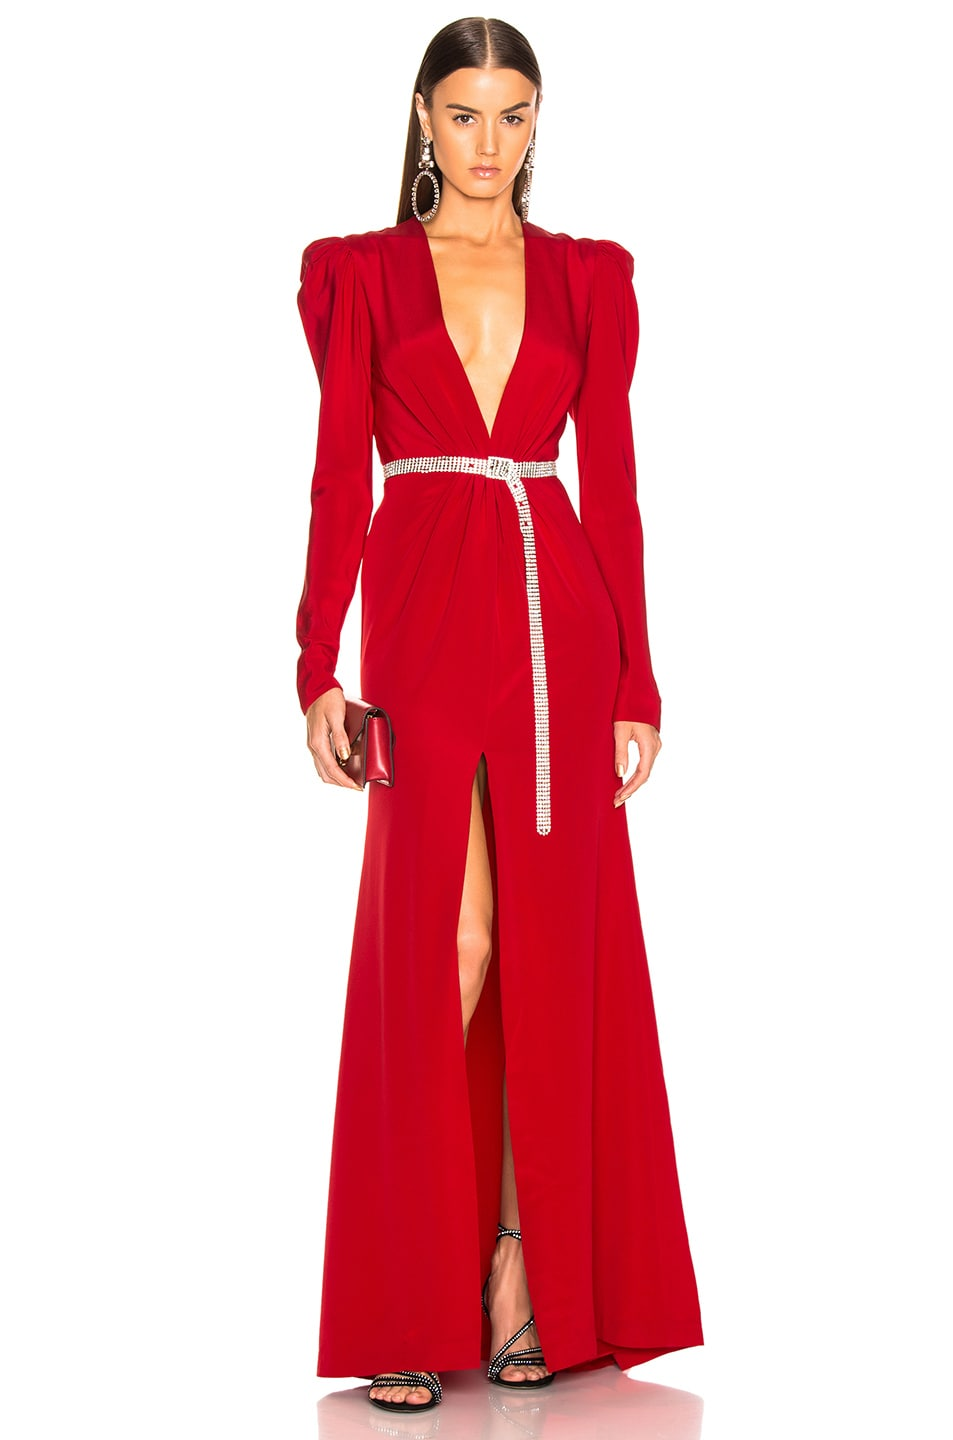 Image 1 of SILVIA TCHERASSI Caeli Dress in Red